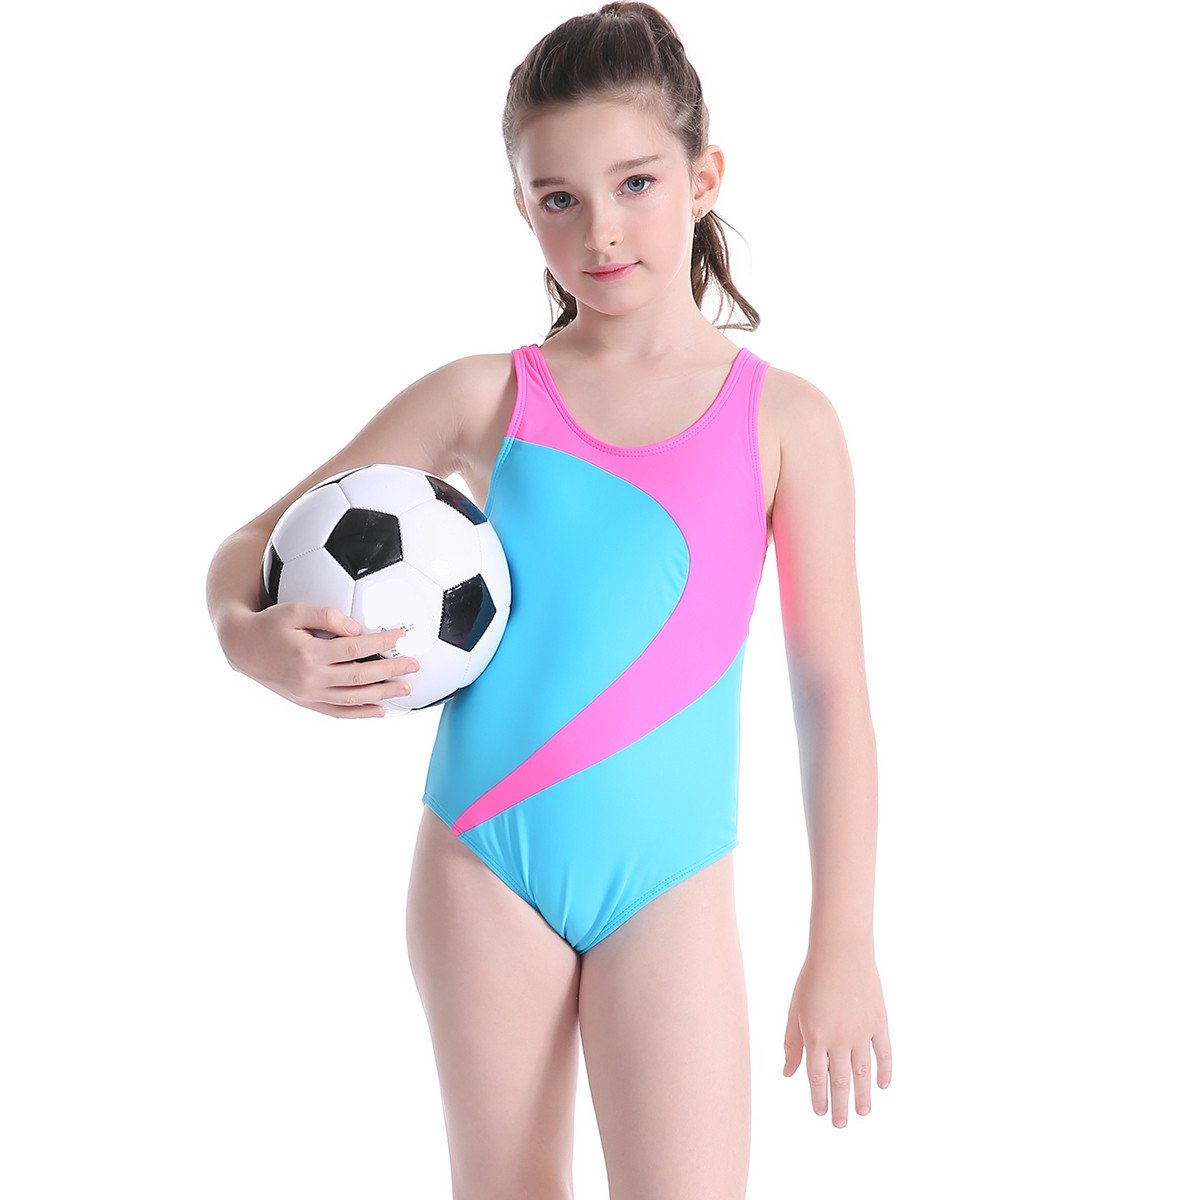 TenMet Girl's Swimwear Swimsuit Monokini Kids Beachwear Backless Elastic Bathing Suit Anti UV Surfing Sporty by TenMet